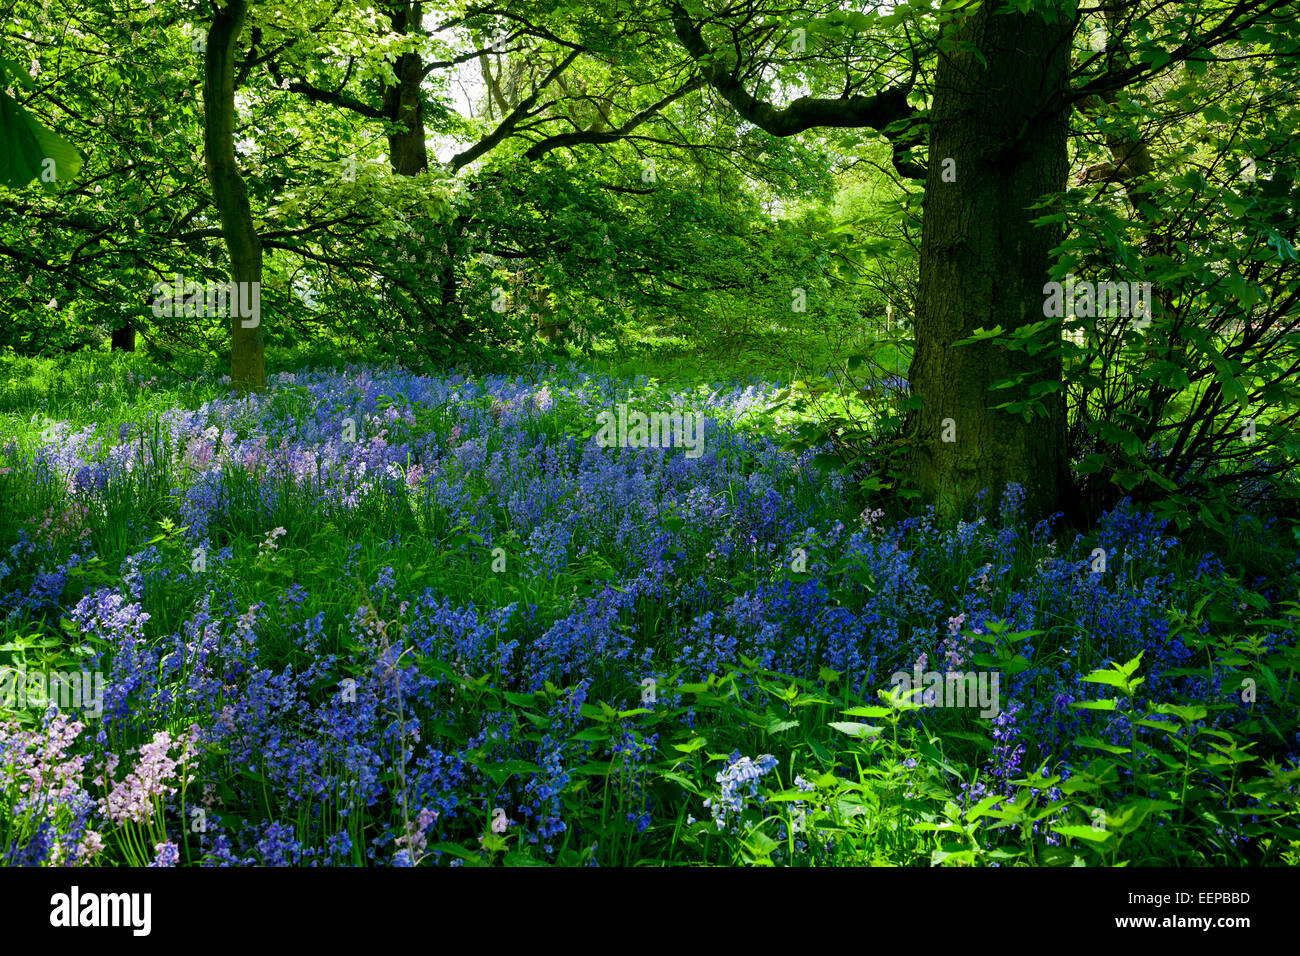 View of bluebells hyacinthoides non scripta a bulbous perennial stock photo view of bluebells hyacinthoides non scripta a bulbous perennial plant giving ground cover in woodland in spring sunshine dhlflorist Image collections